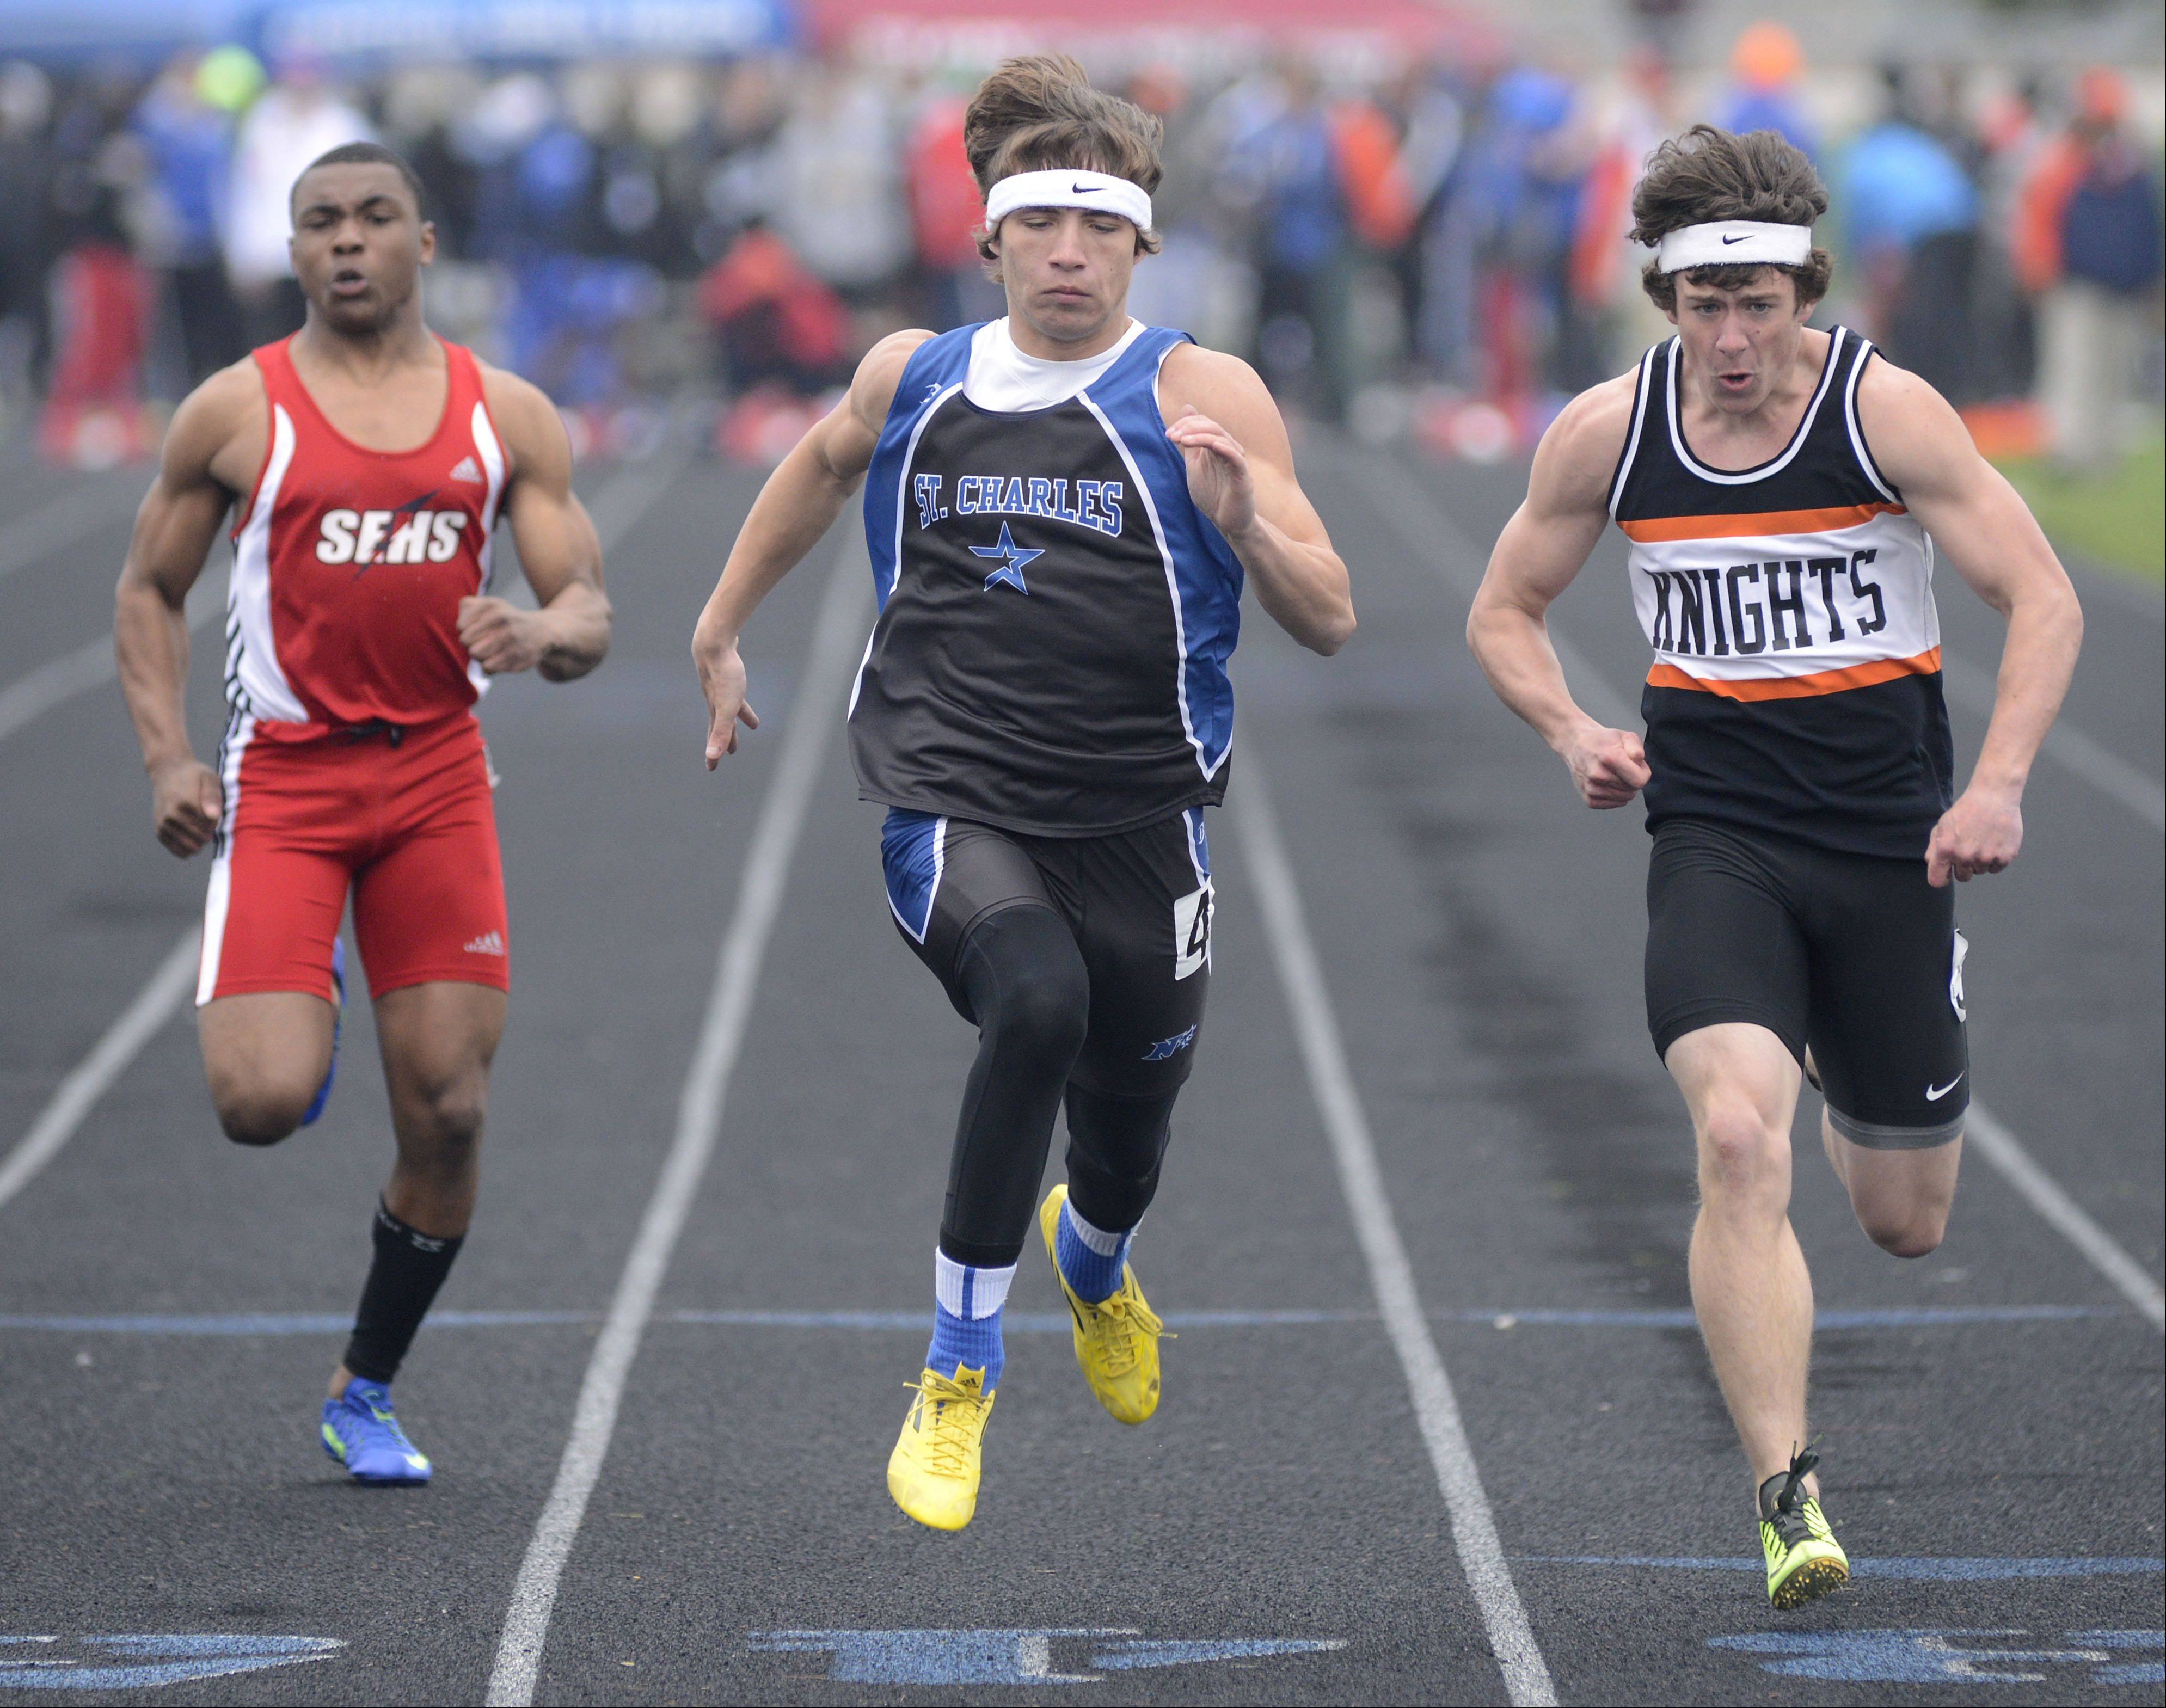 St. Charles North's Grant Loess takes the win in the final heat of the 100-meter dash at the Kane County boys track meet at Burlington Central on Friday. South Elgin's Shawn Griffin is on the left, and Kaneland's Brandon Bishop on the right.